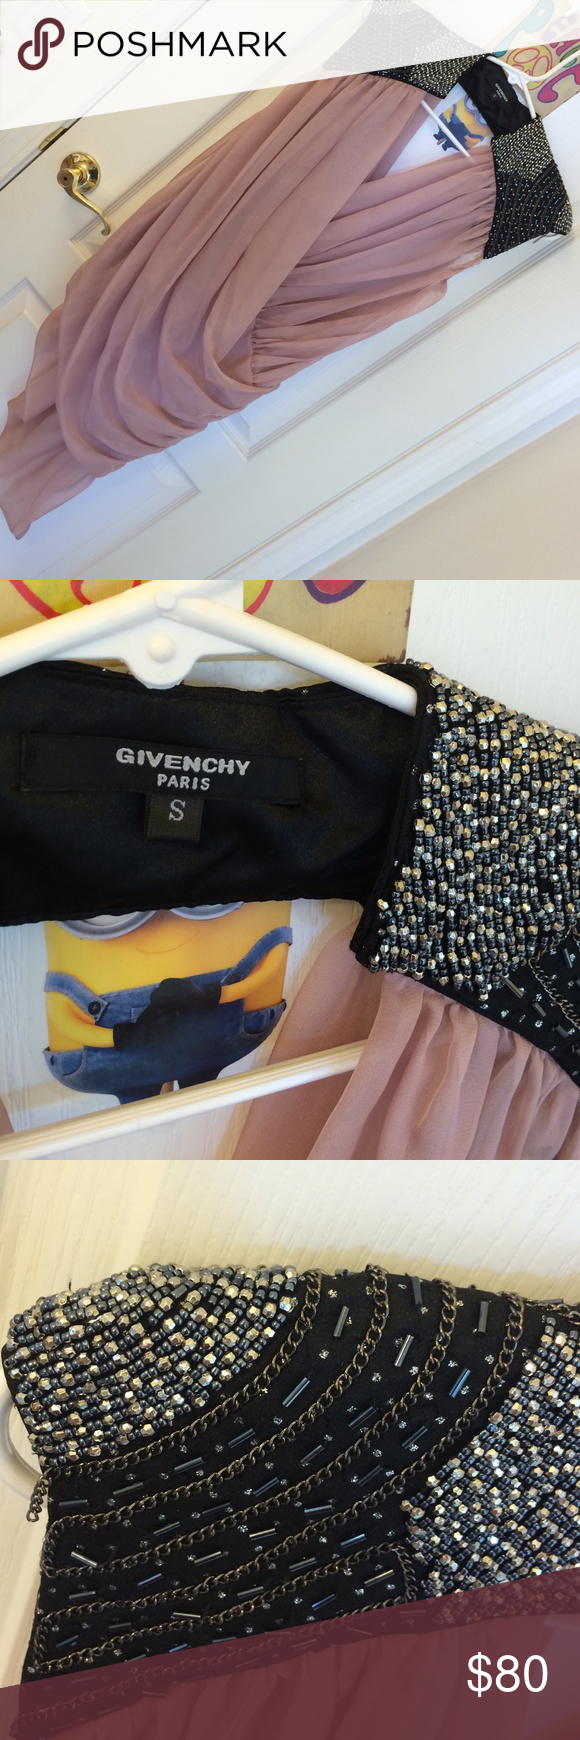 Givenchy sexy chiffon sequin shoulder dress size S Givenchy sexy beige color chiffon sequin shoulder dress size S; received as a gift few years ago,never wear, just preowned; no trade please,thanks💝 Givenchy Dresses